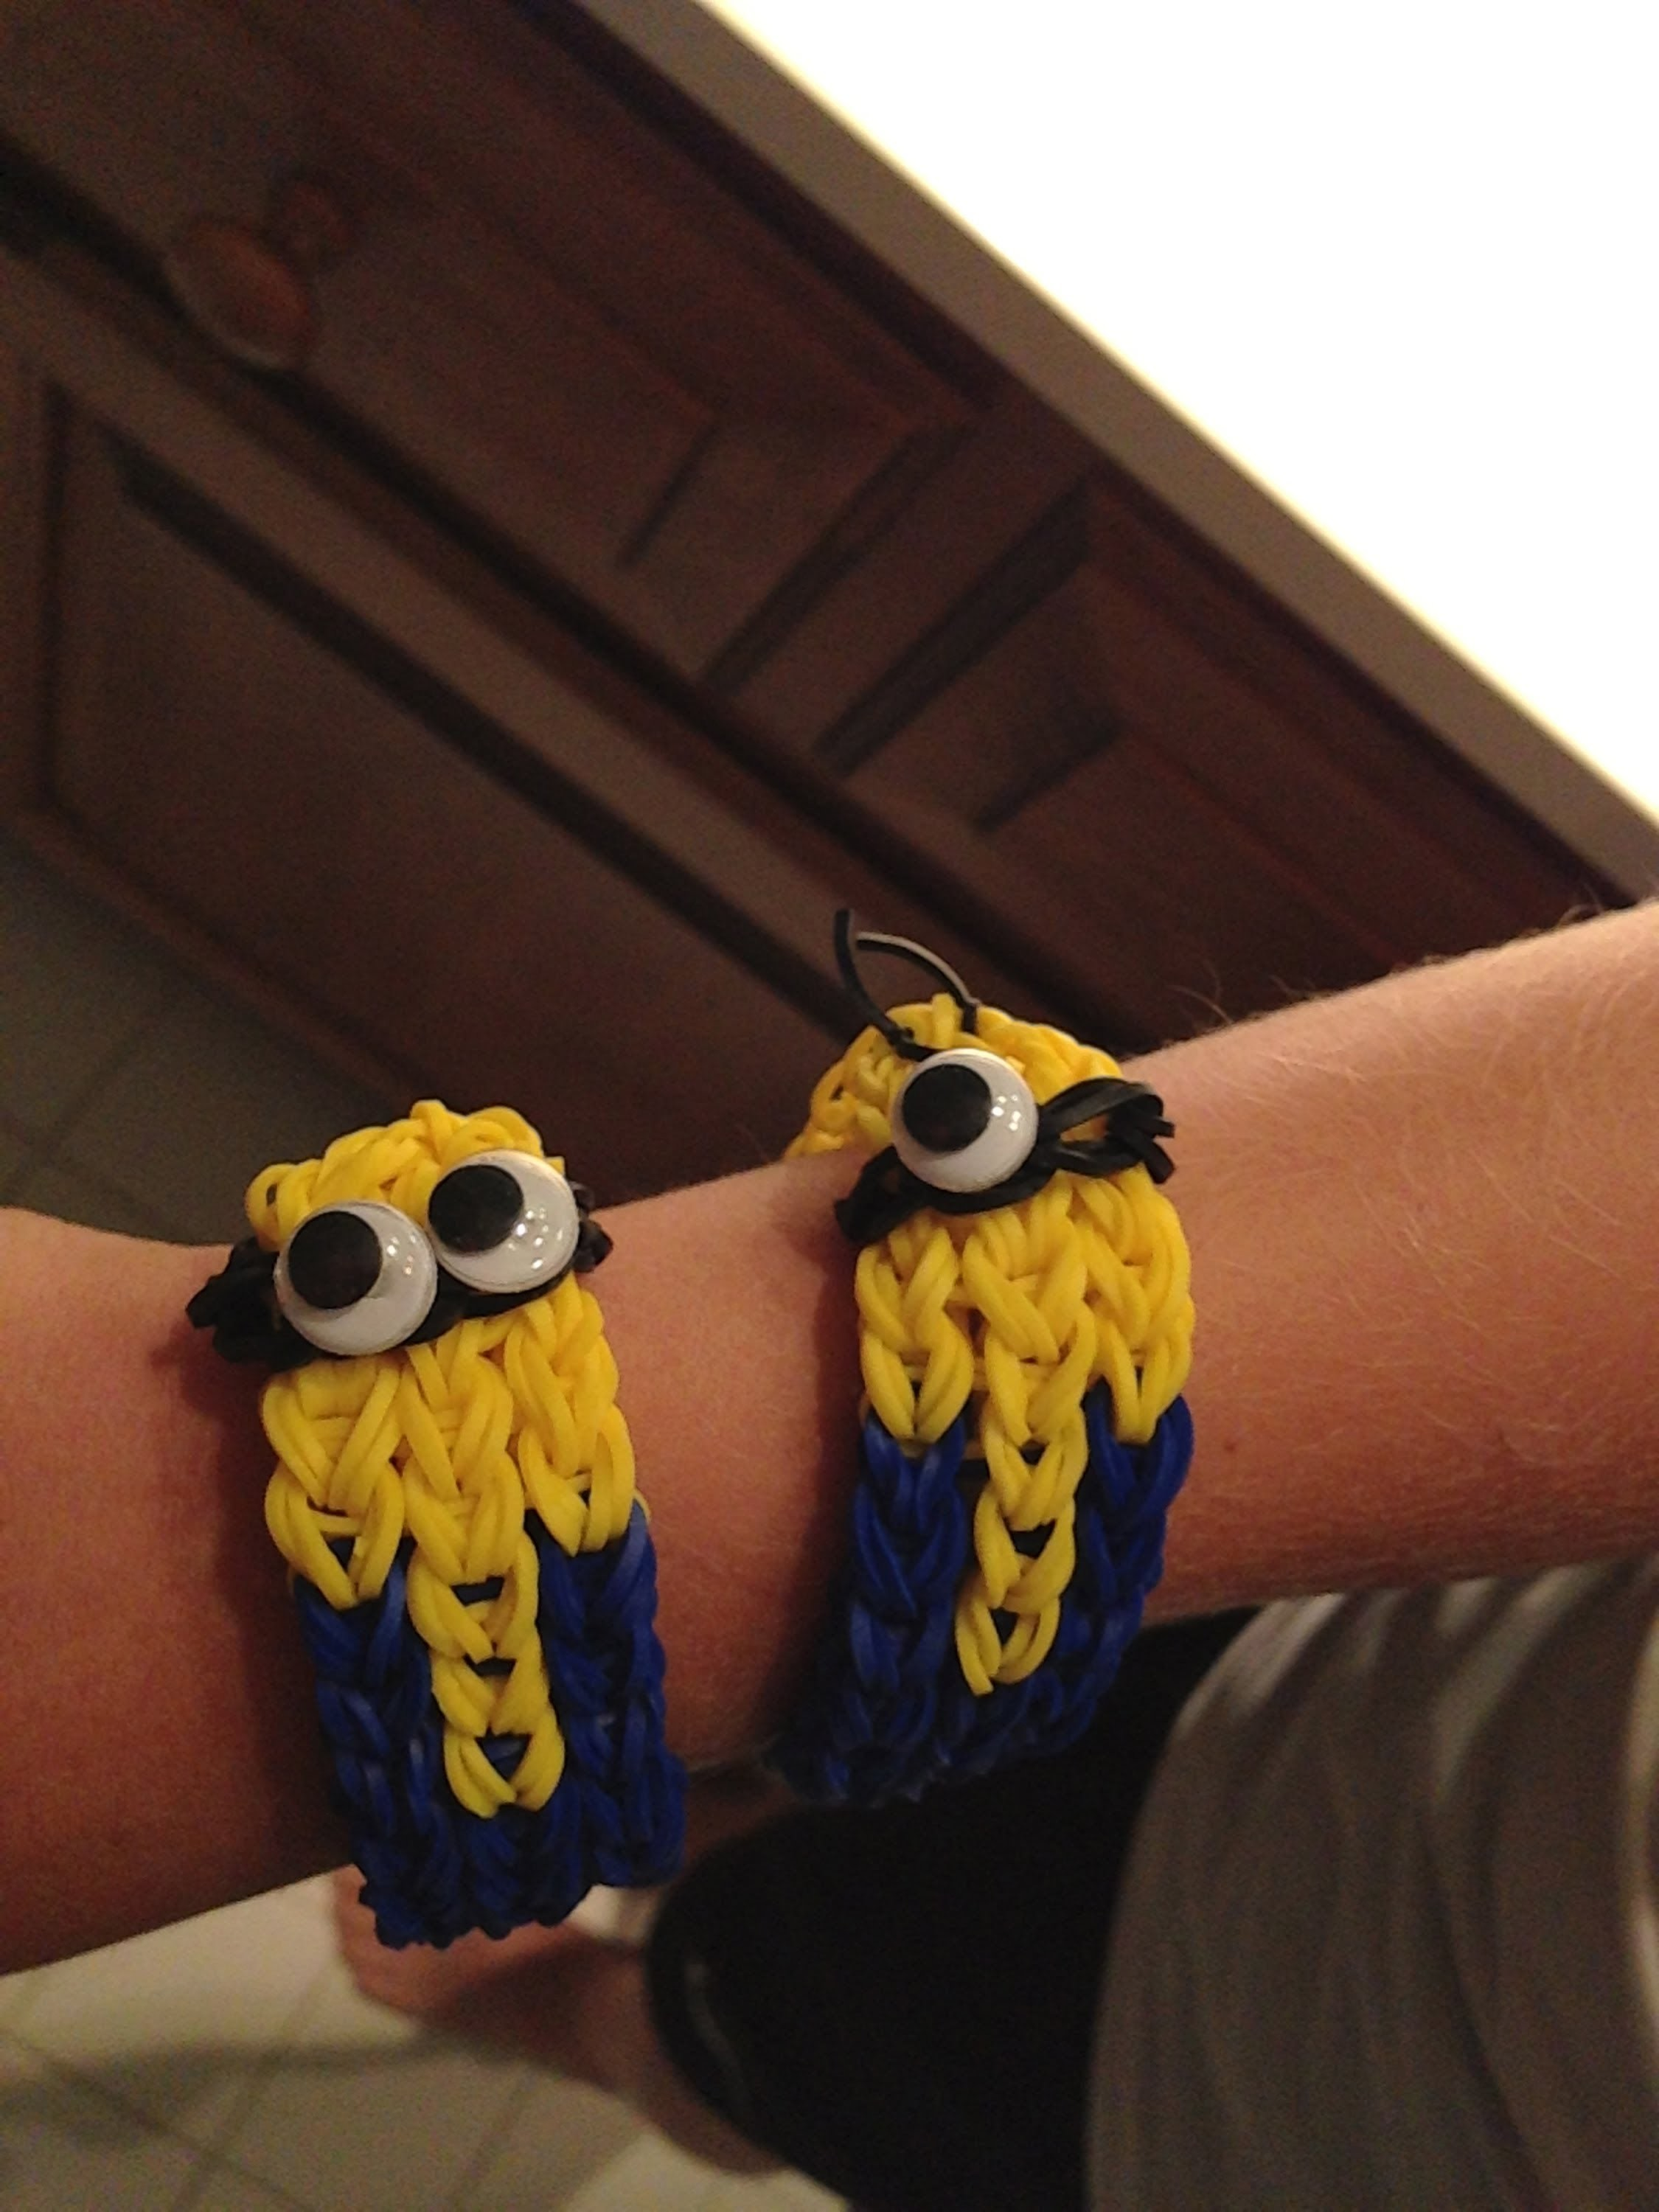 How to make a minion bracelet - rainbow loom